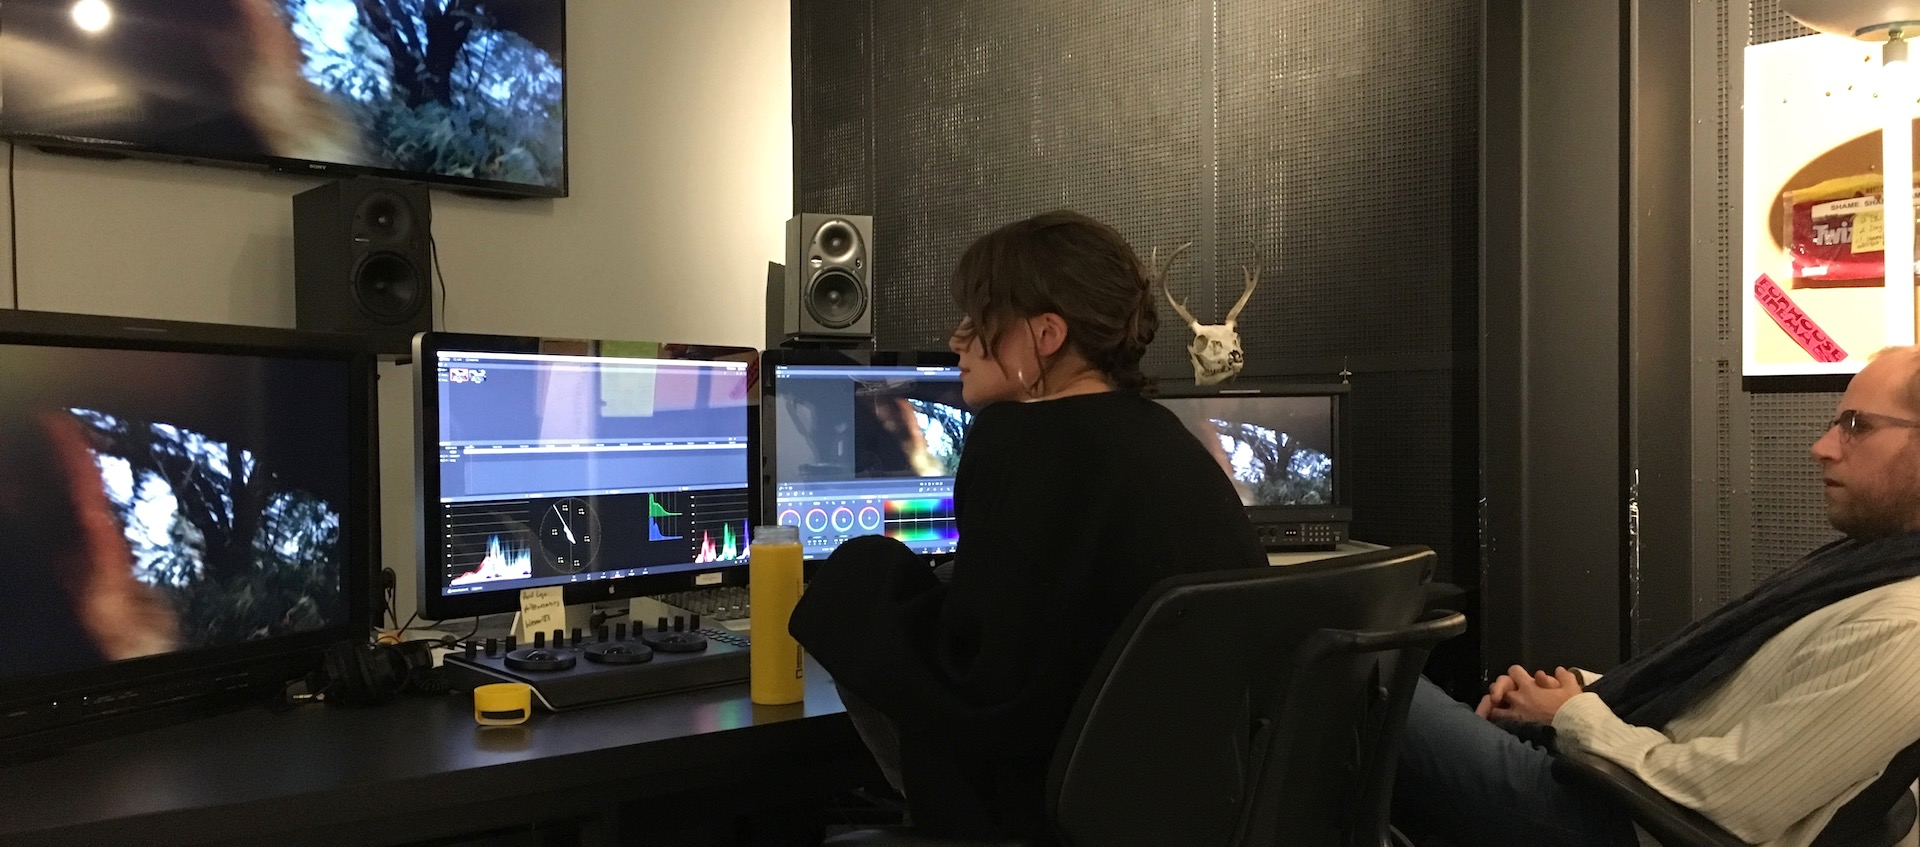 Filmmakers J.P. Sniadecki & Lisa Malloy complete post-production work on The Shape of Things to Come in the Wexner Center Film/Video Studio